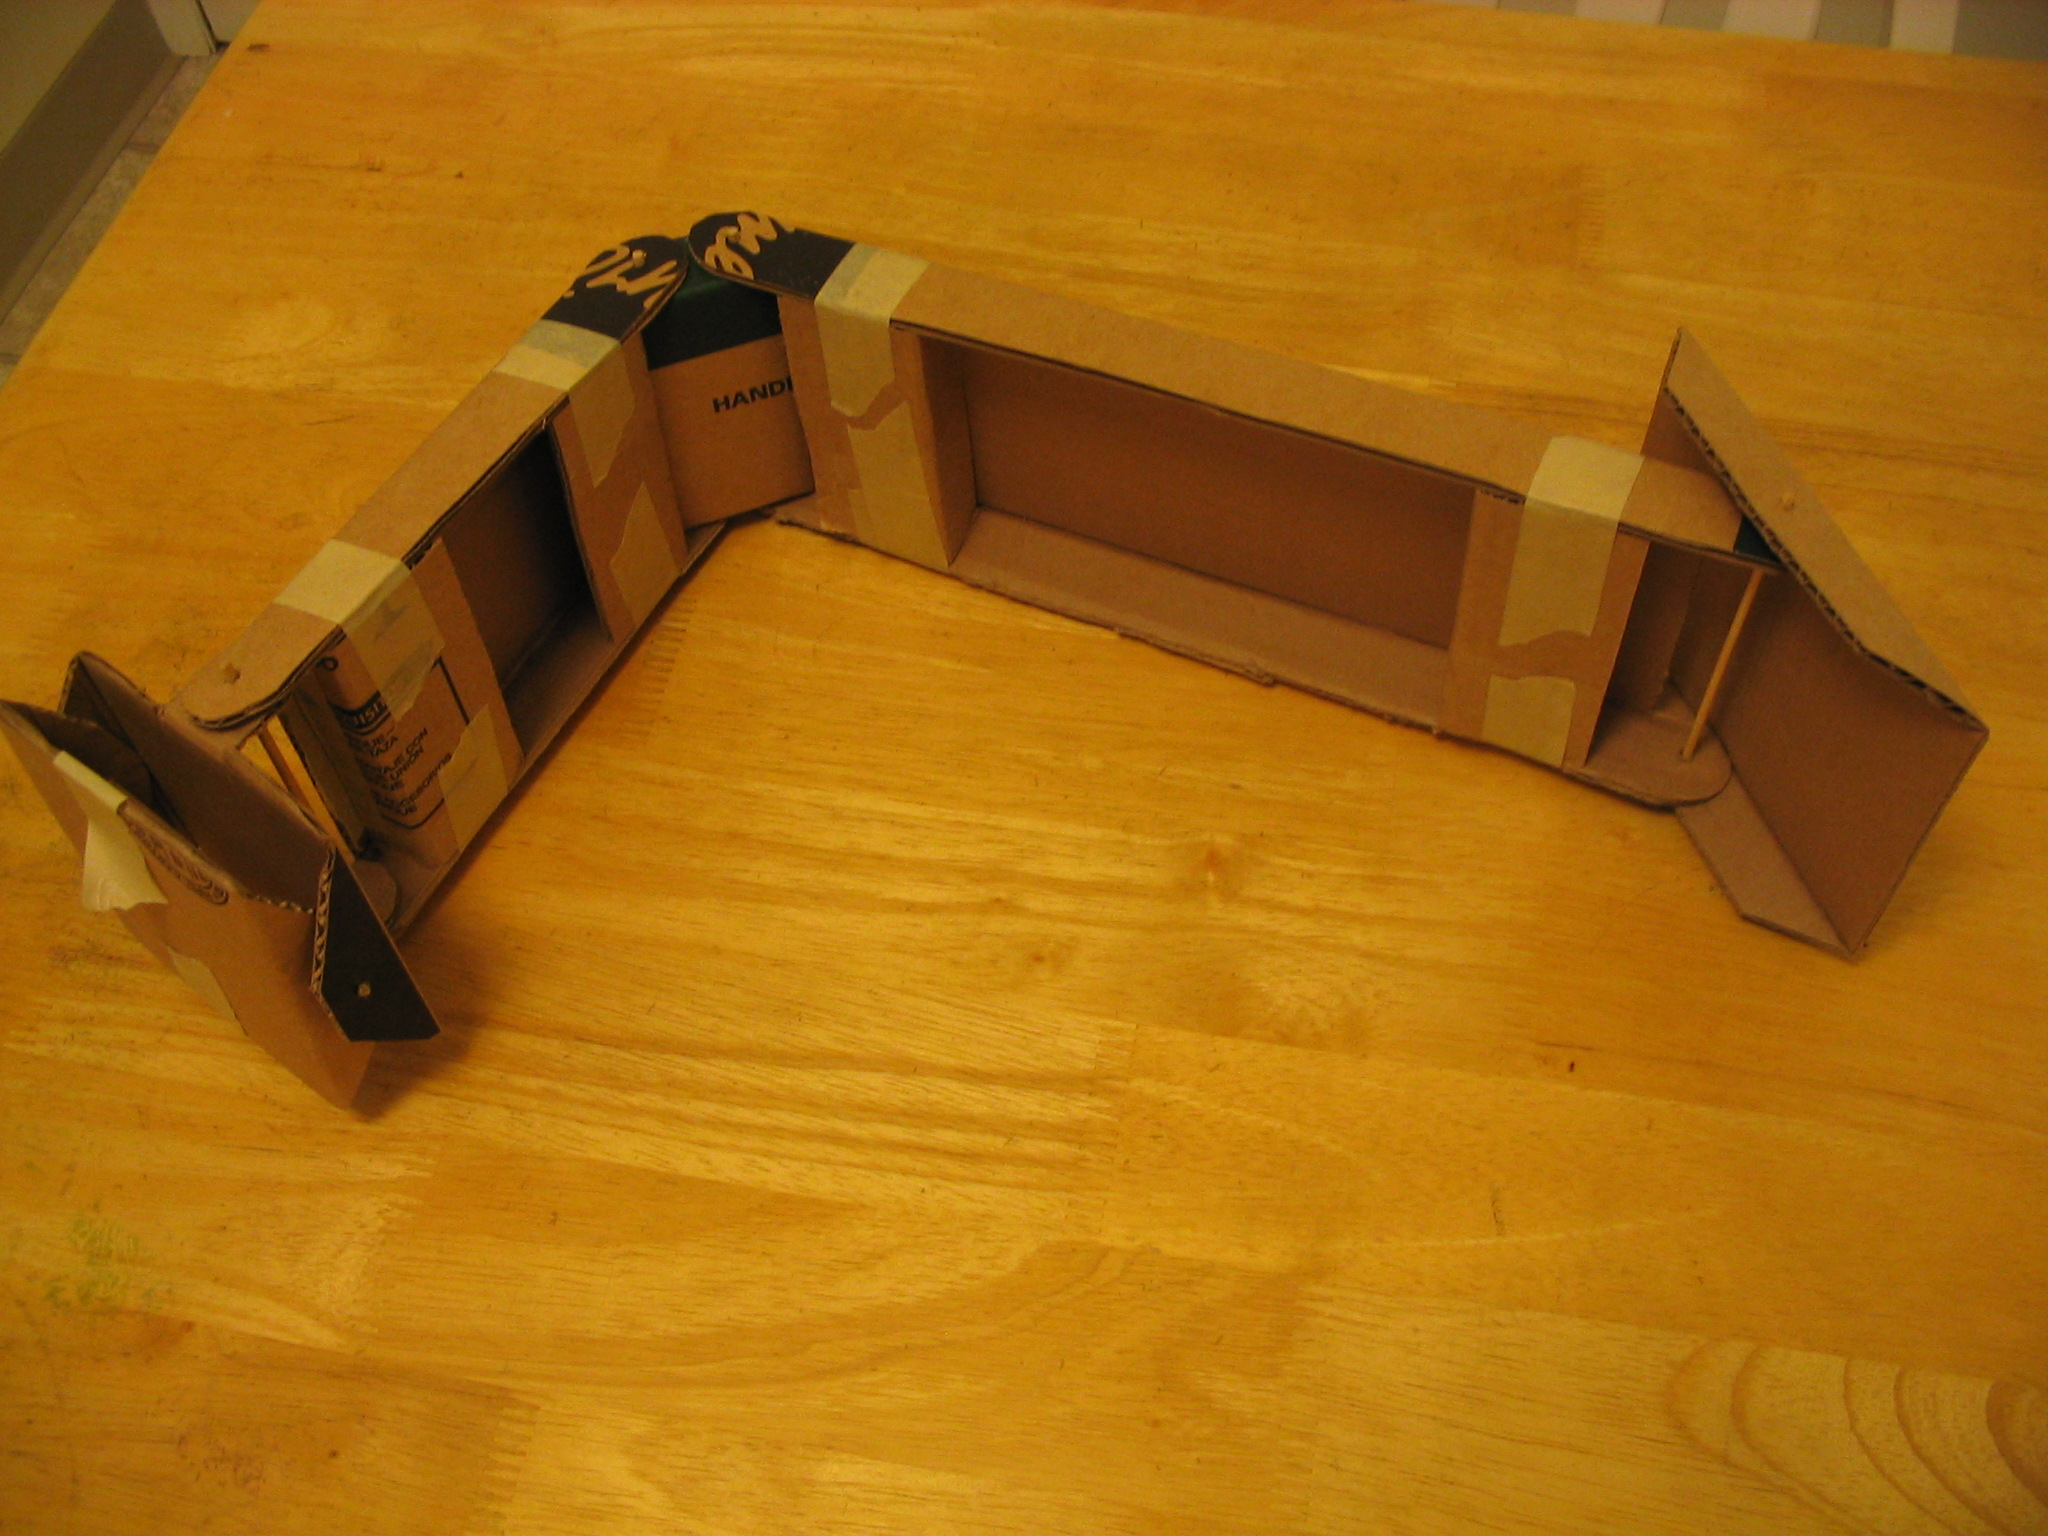 Second refined cardboard arm